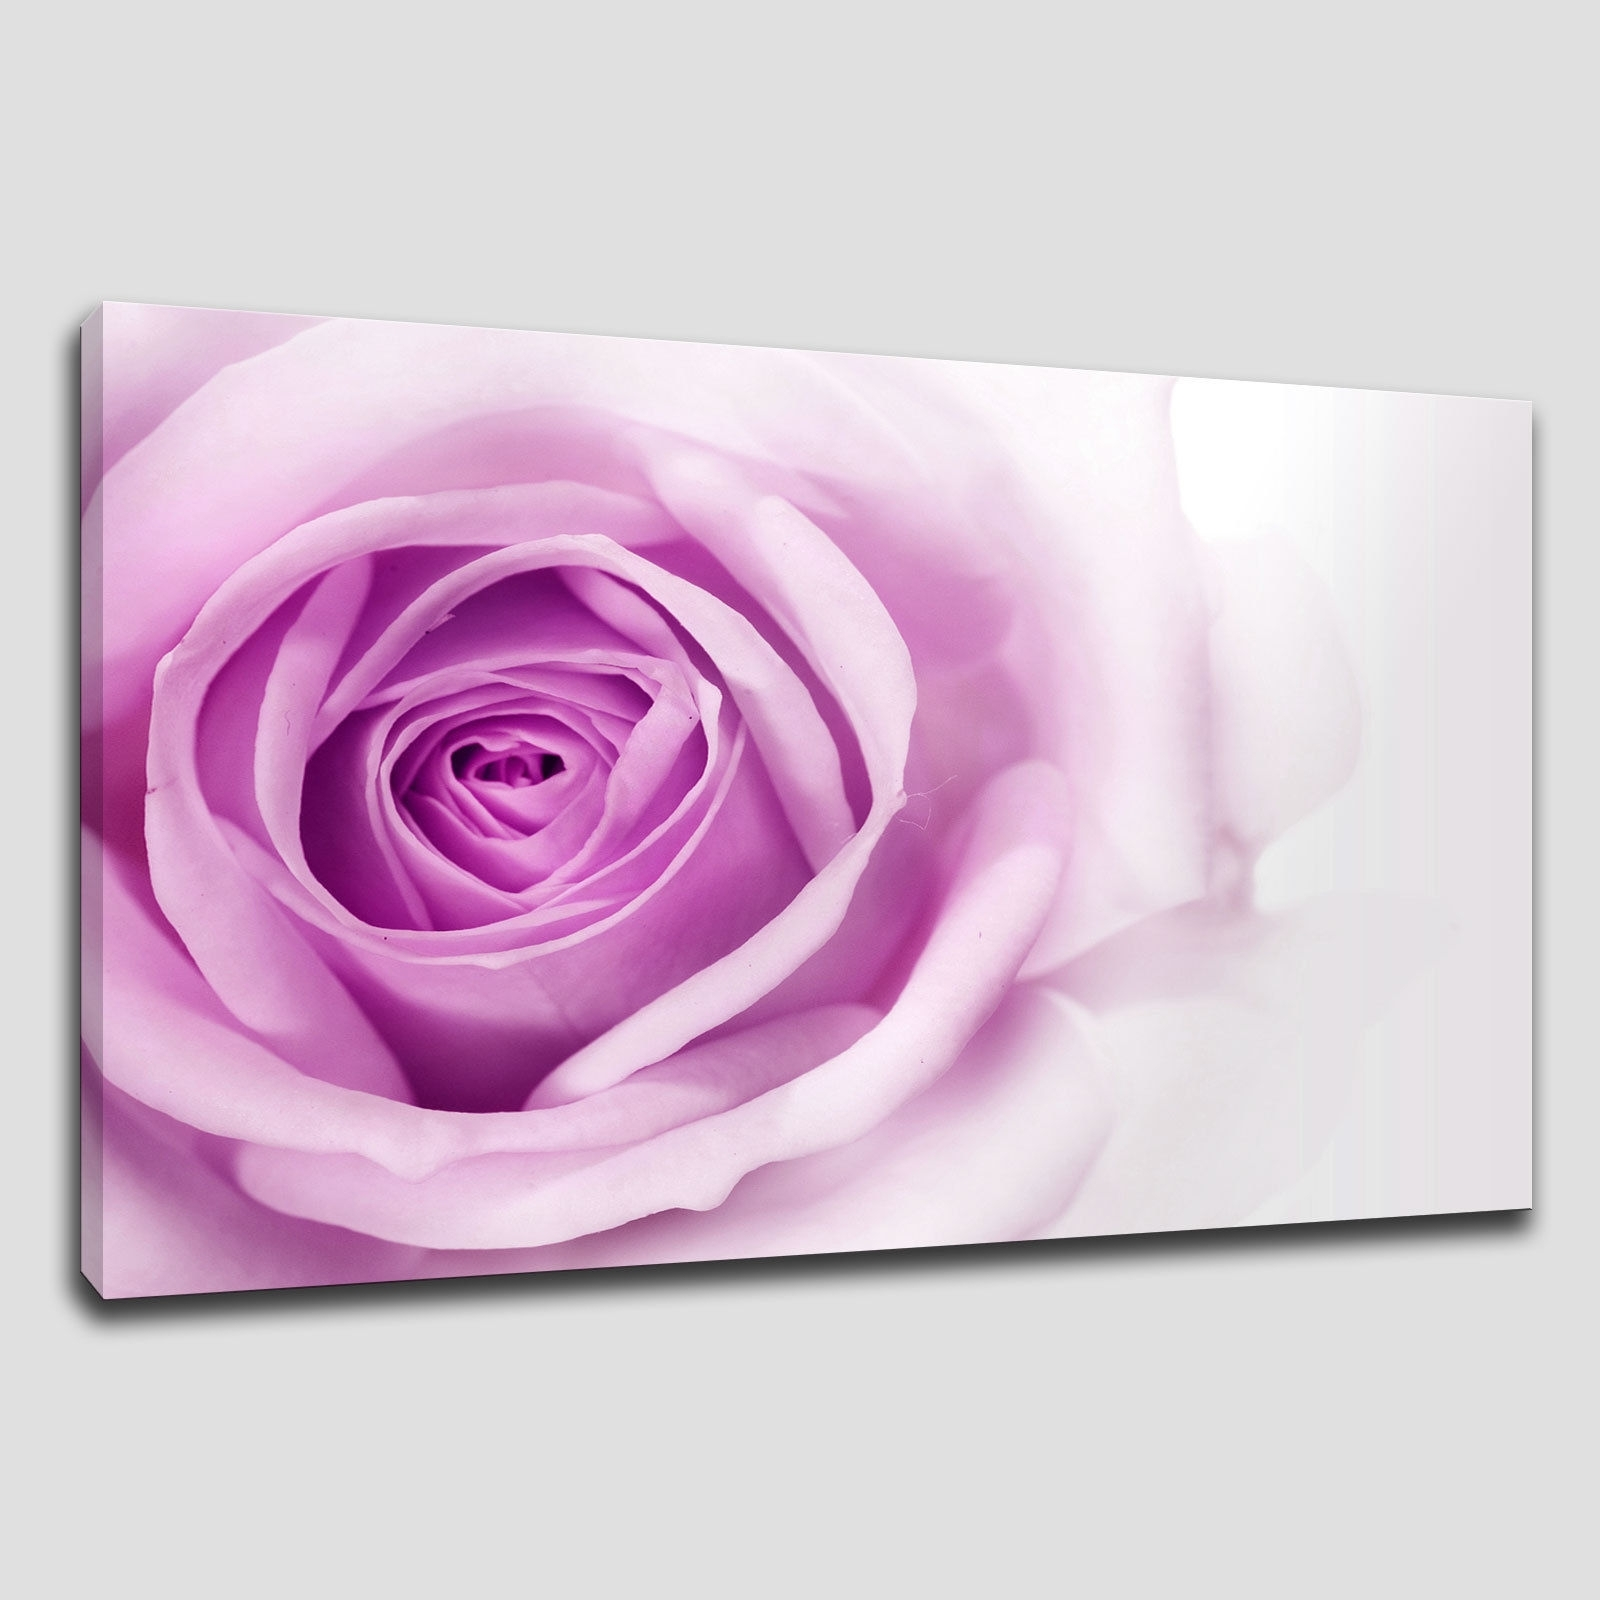 Newest Wall Art Designs: Decor Red Rose Canvas Wall Art Large Oil Throughout Roses Canvas Wall Art (View 2 of 15)